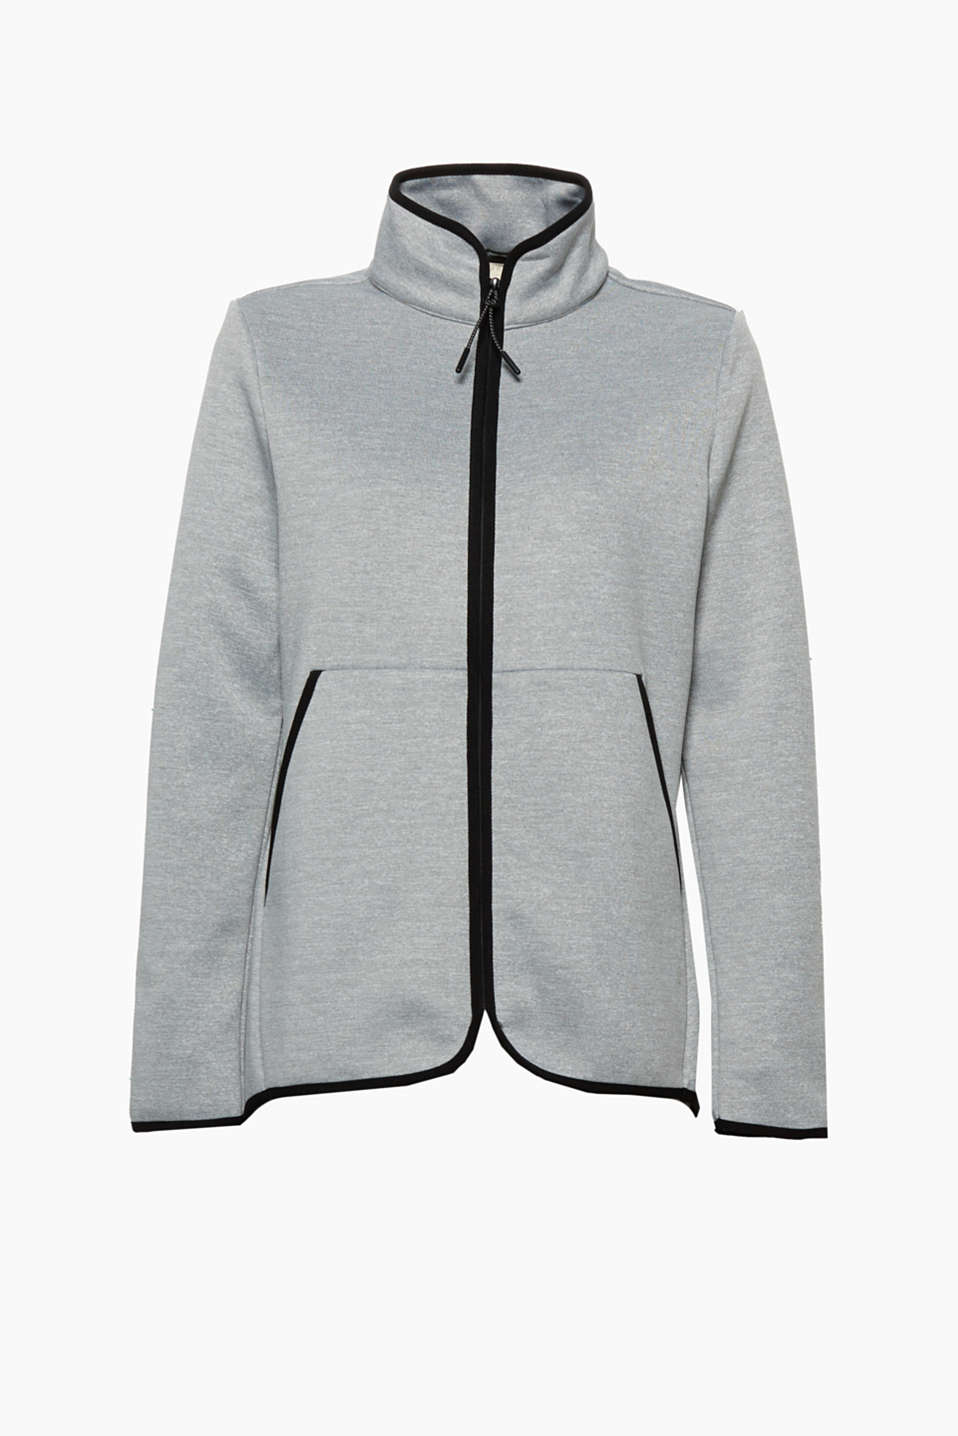 Your new favourite jacket for sport and leisure wear: cardigan in a neoprene design with soft fleece lining!